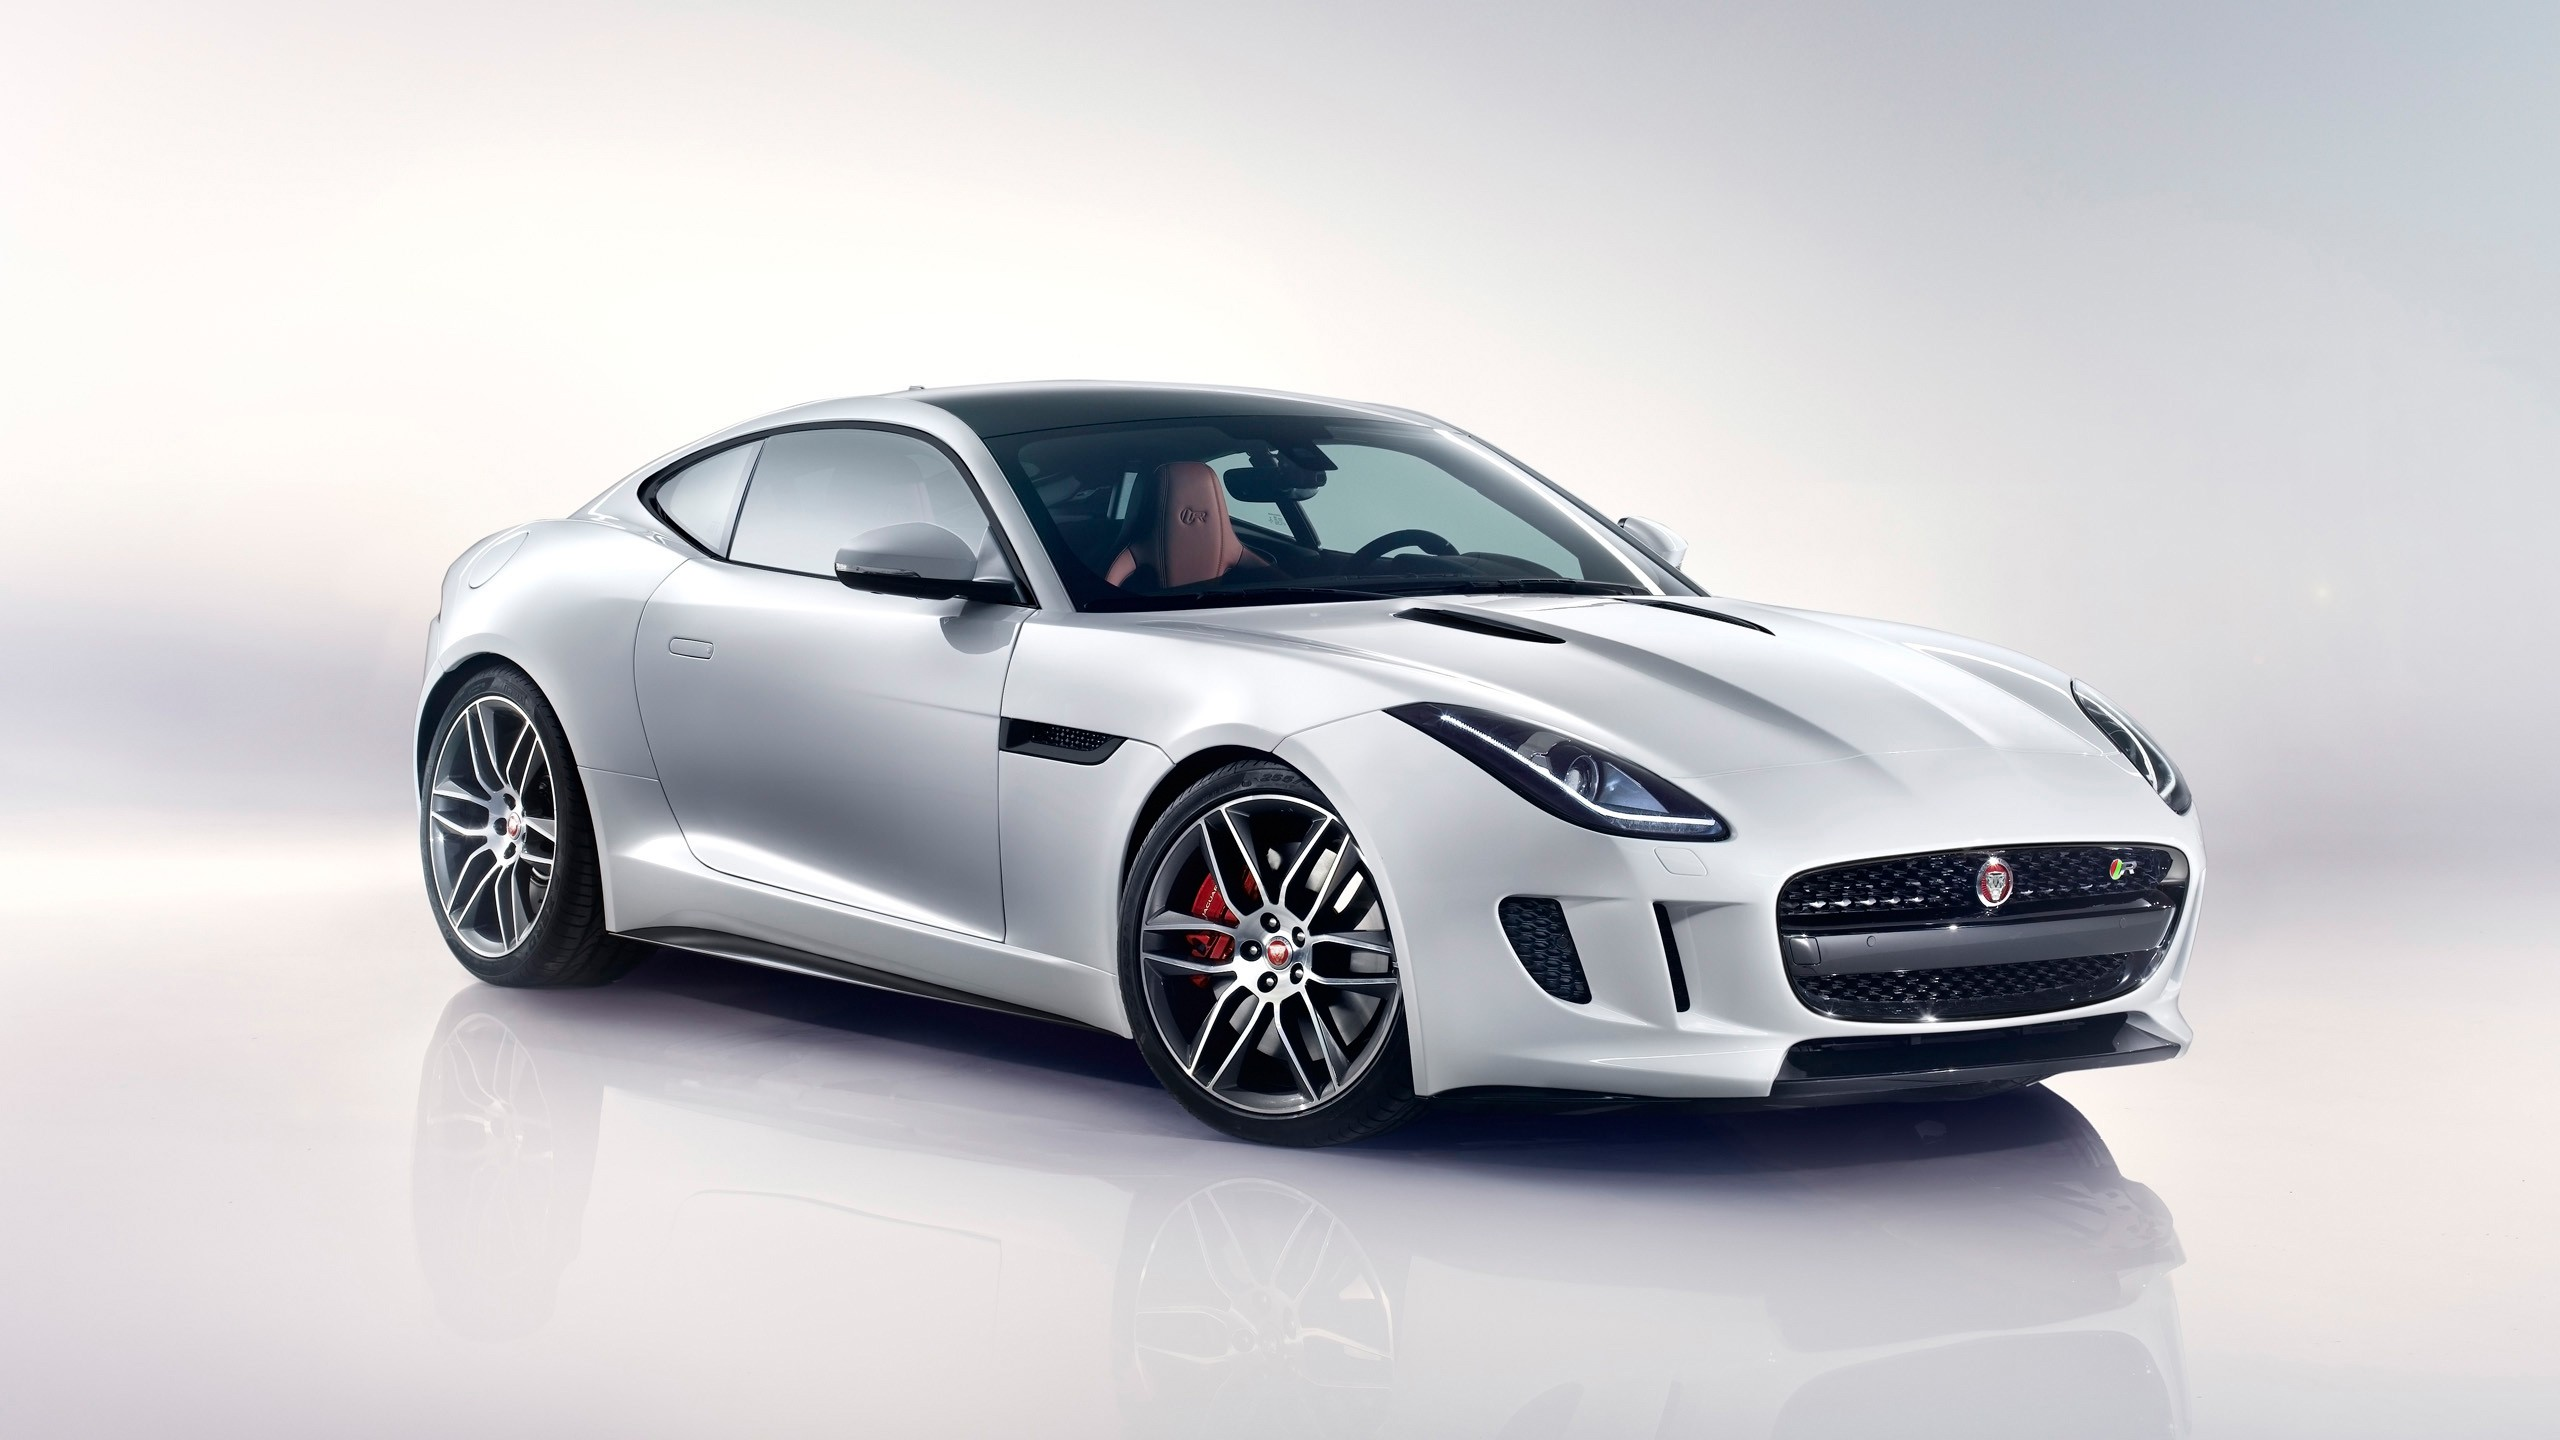 F Type Coupe >> 2014 Jaguar F Type R Coupe White Wallpaper | HD Car Wallpapers | ID #4227